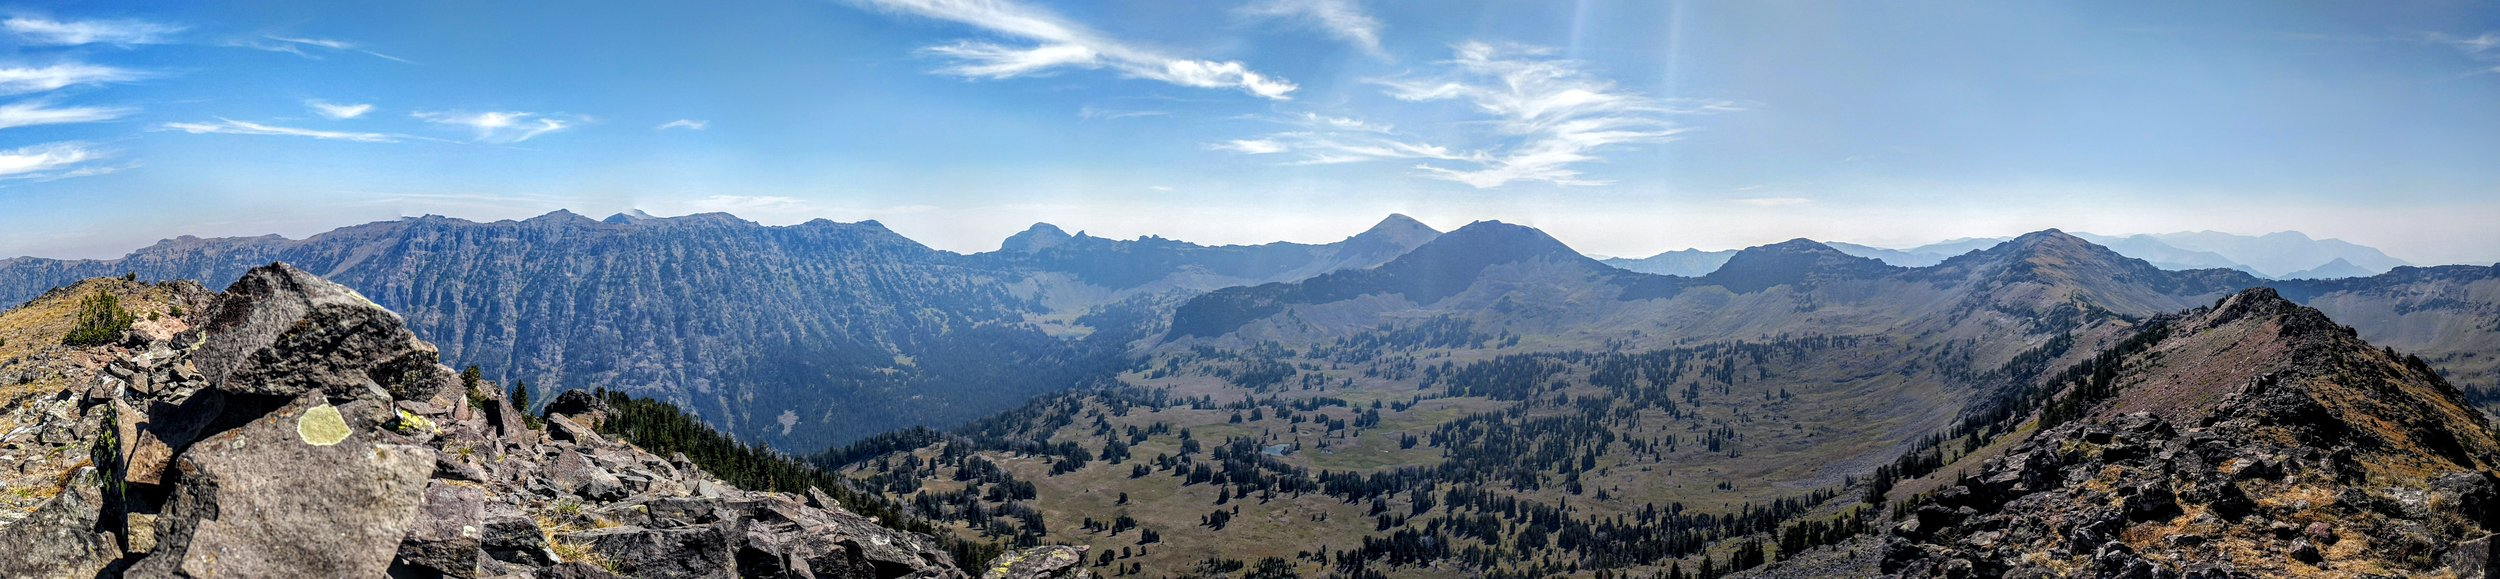 Looking southeast from Divide Peak, with views of the ridgeline to Hyalite Peak and the basin below